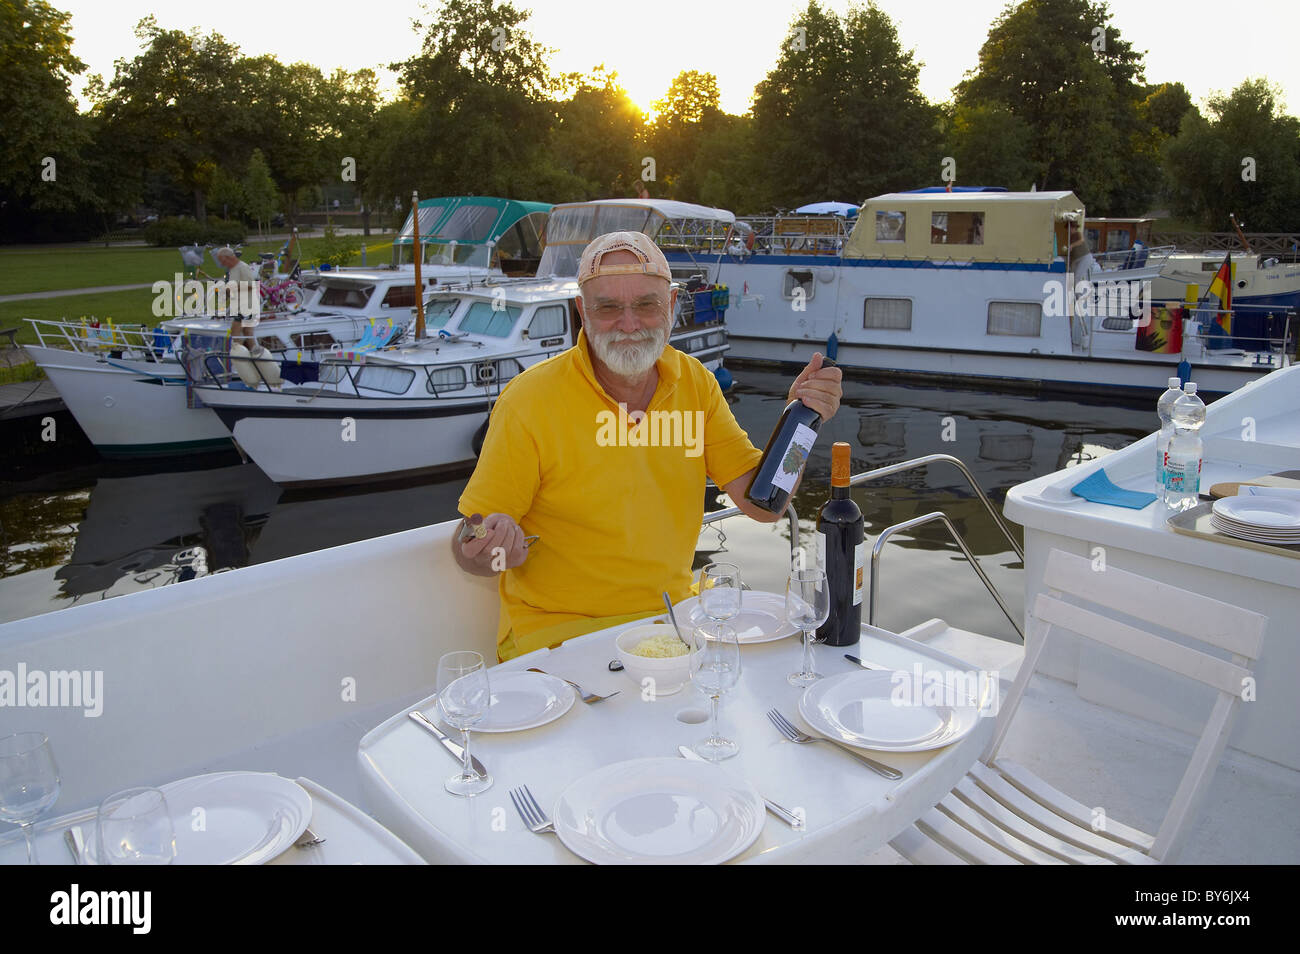 Man on a houseboat, Templin, Brandenburg, Germany - Stock Image